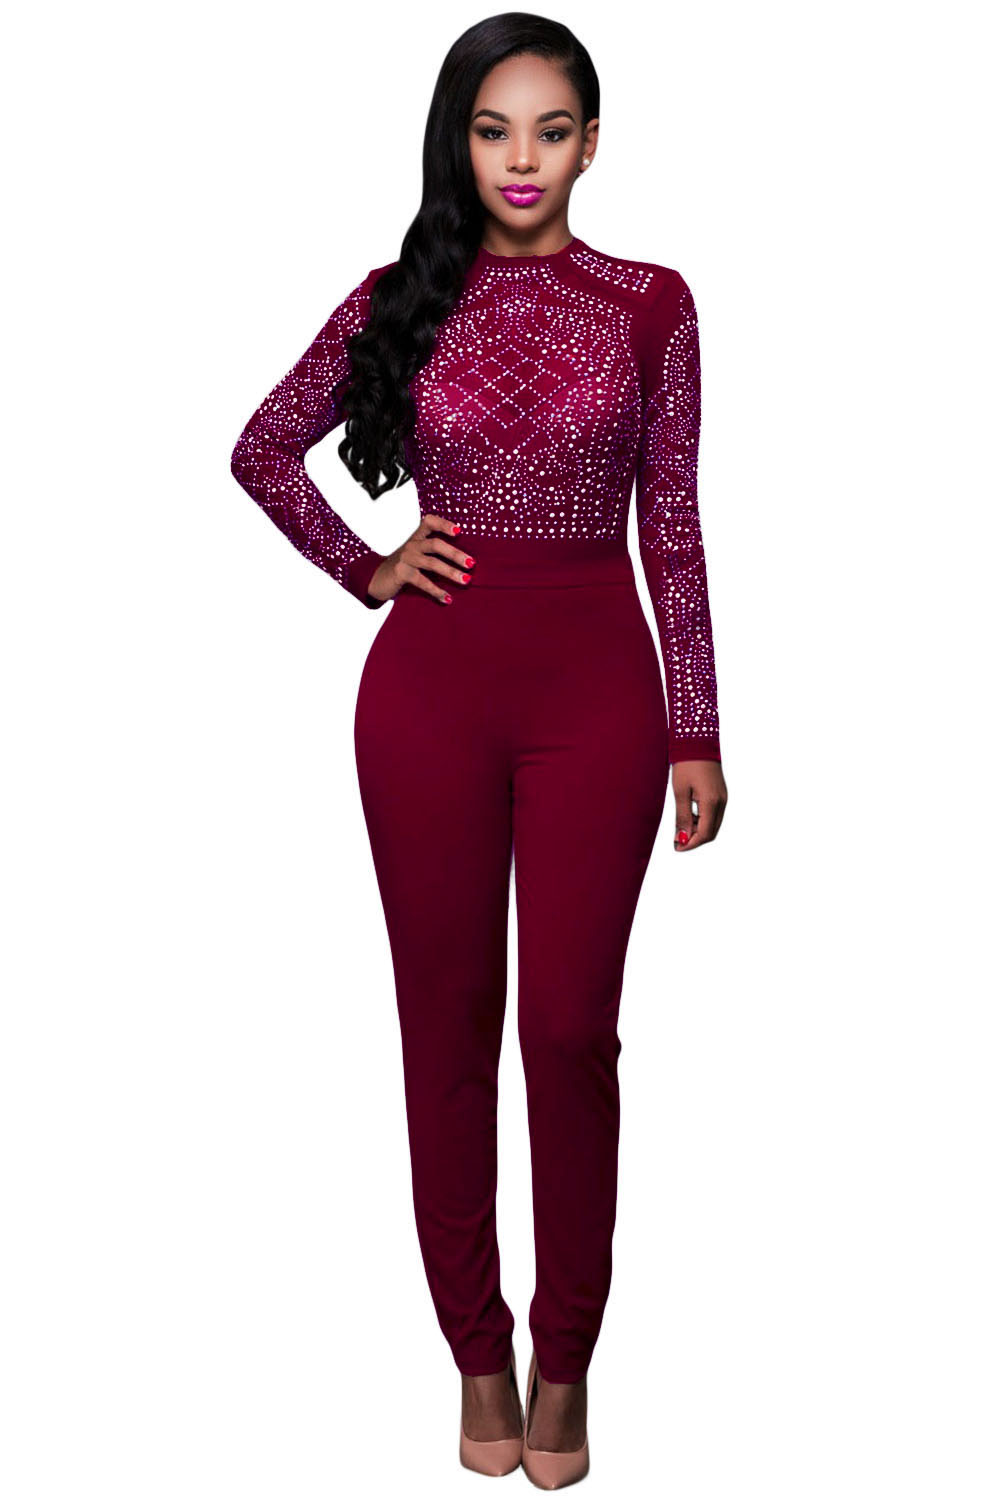 red-long-sleeves-rhinestone-mesh-bodice-formfitting-jumpsuit-llc64168p-3-1